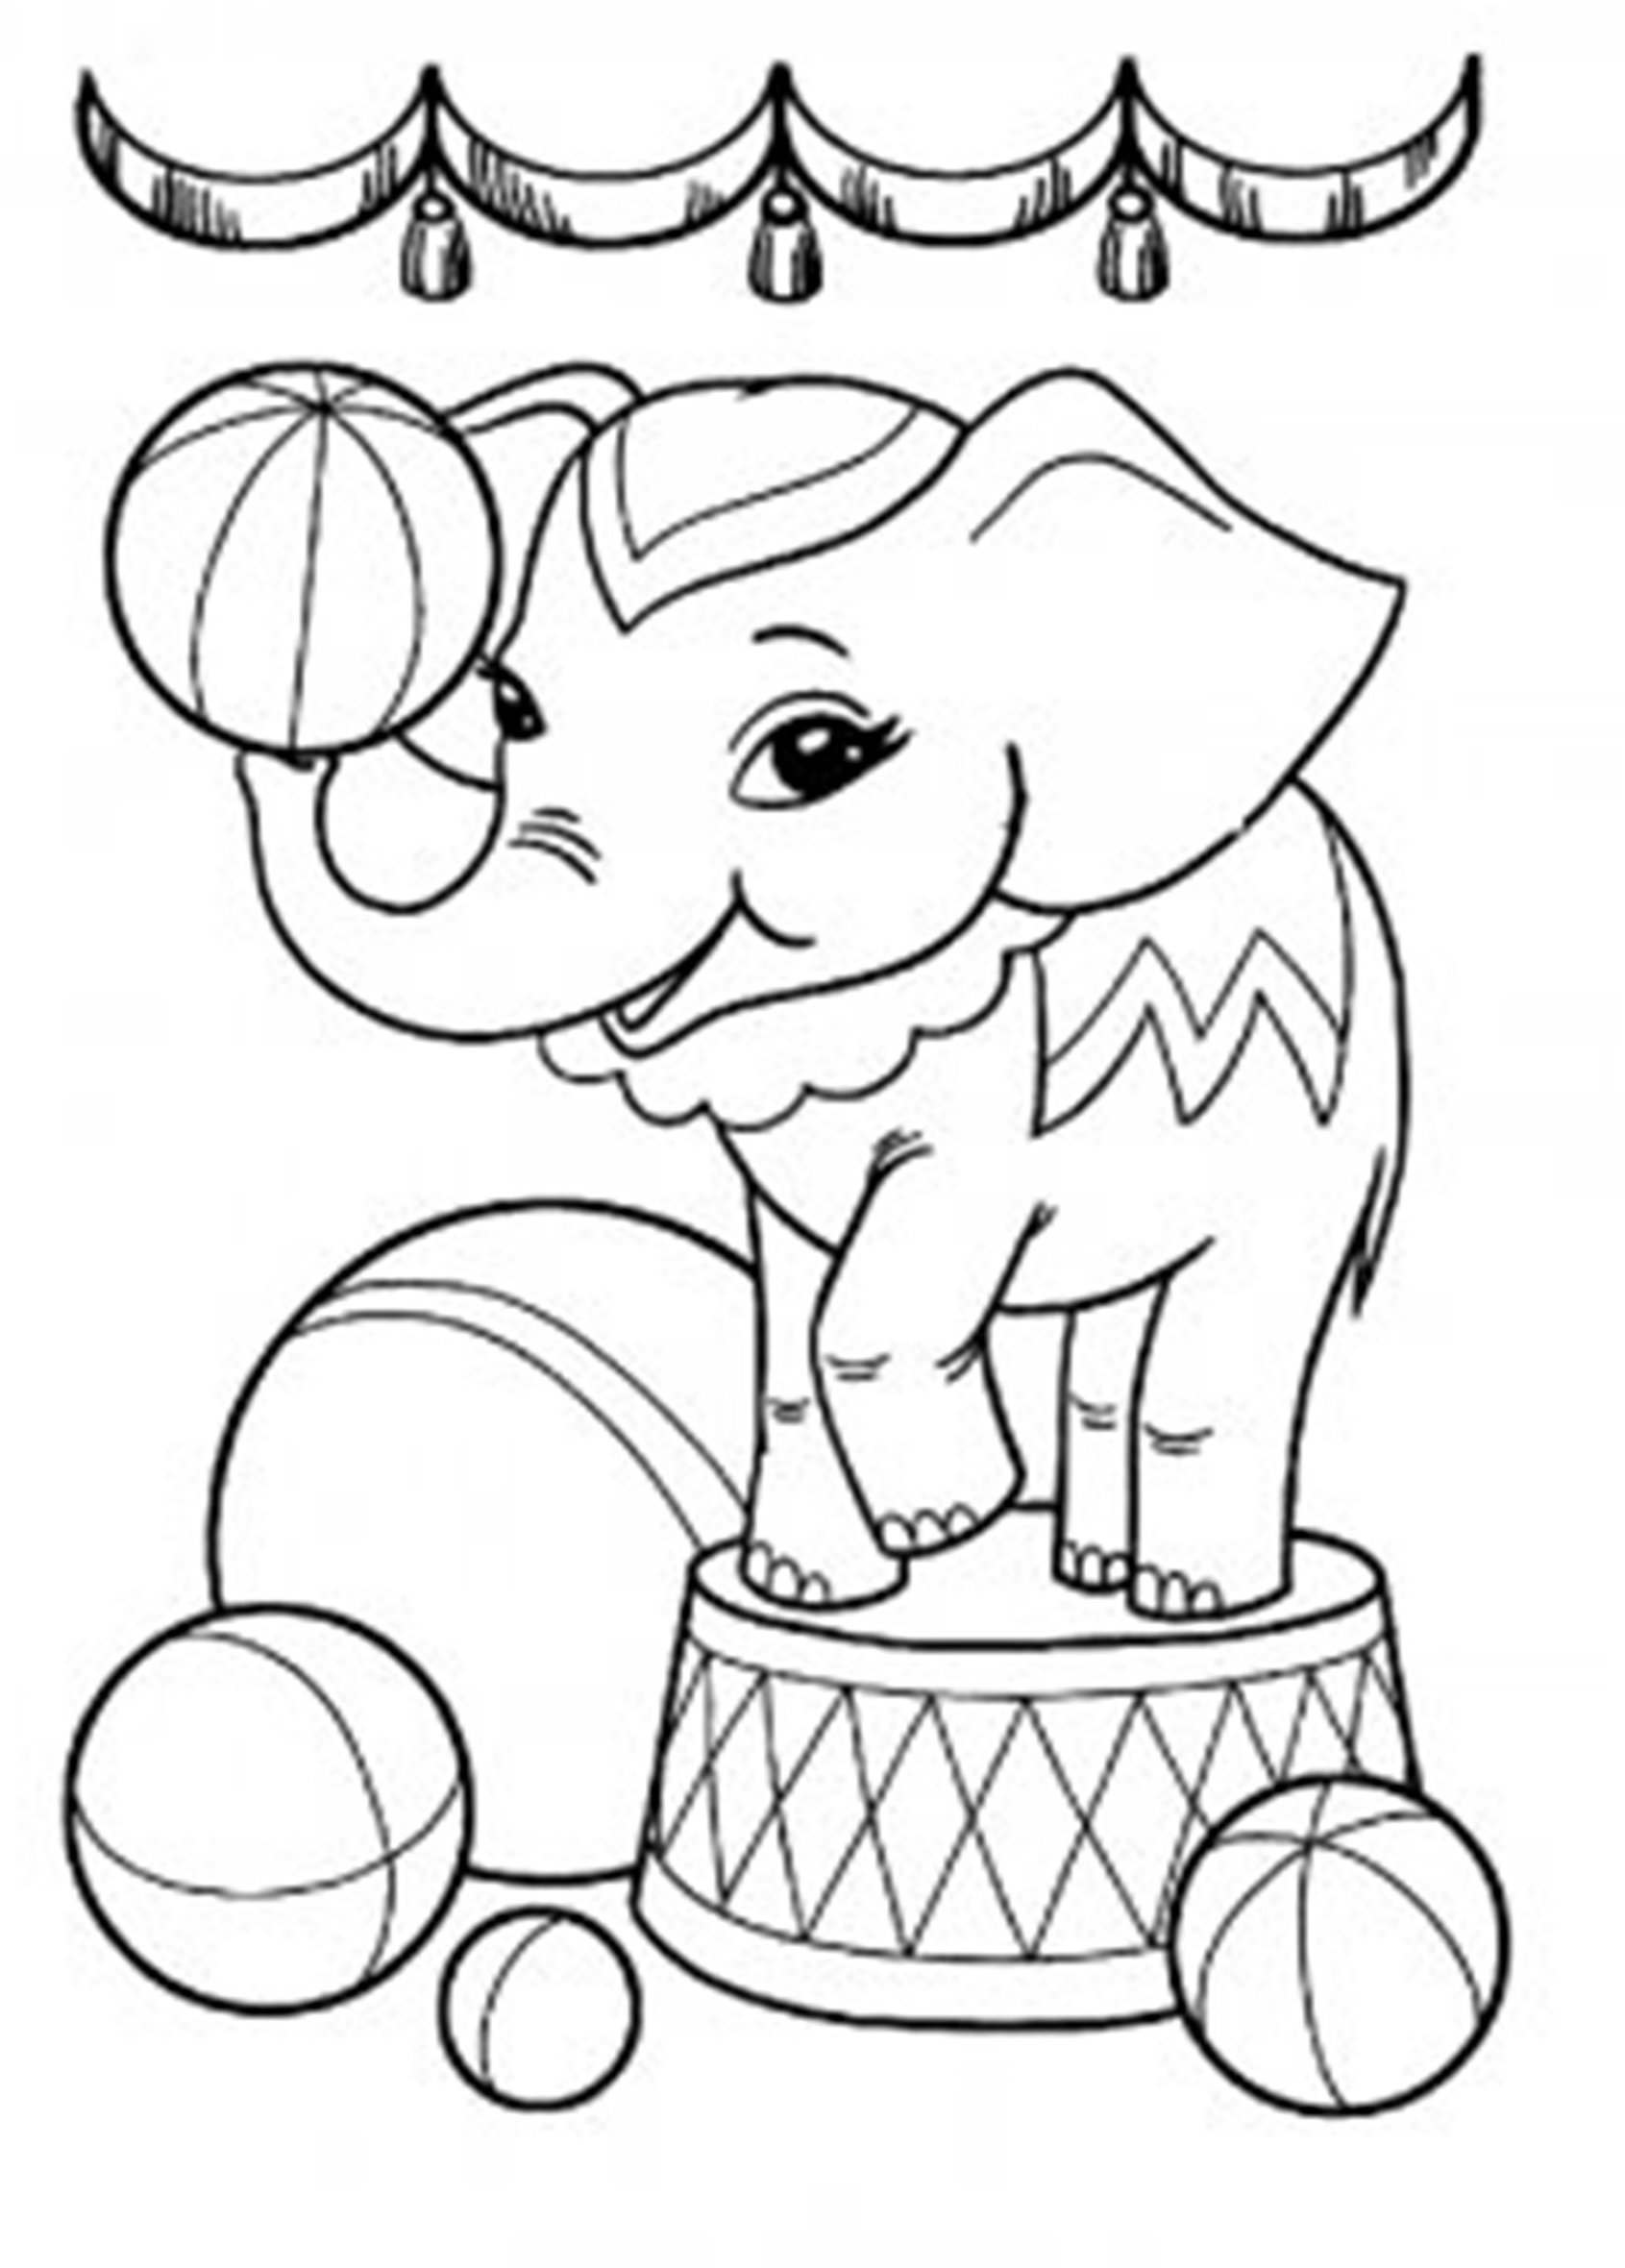 coloring book elephant images coloring pages of elephants download and print for free images book coloring elephant